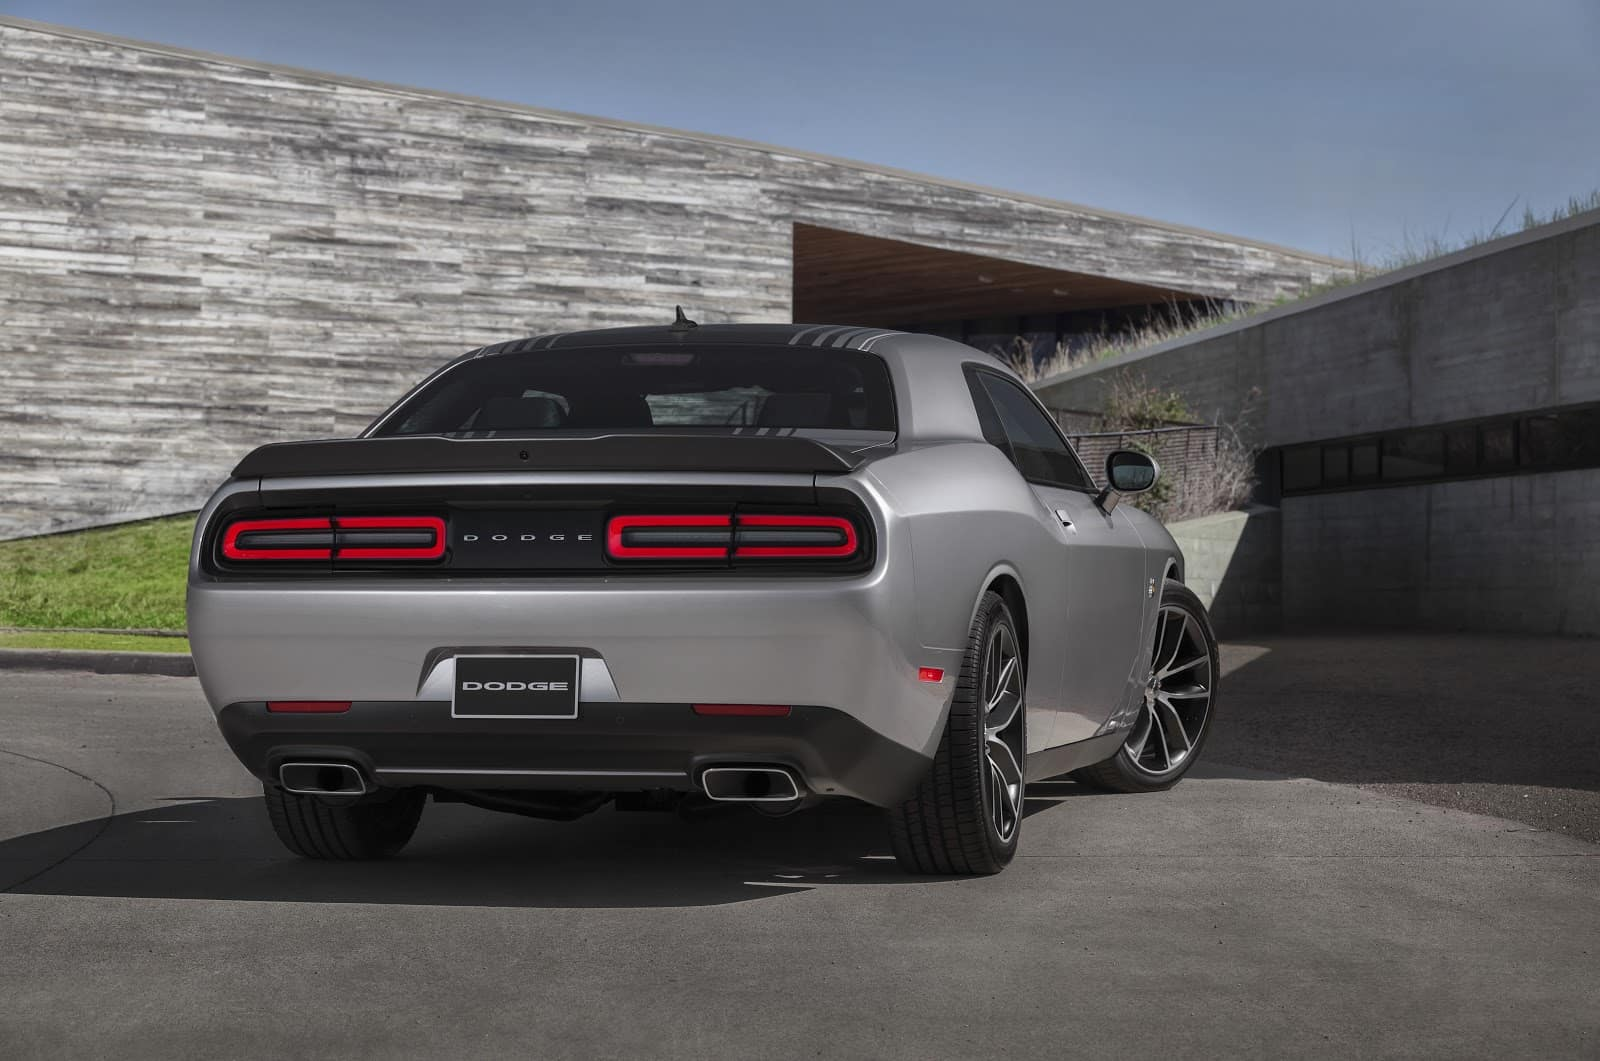 silver dodge challenger parked against concrete exterior of house